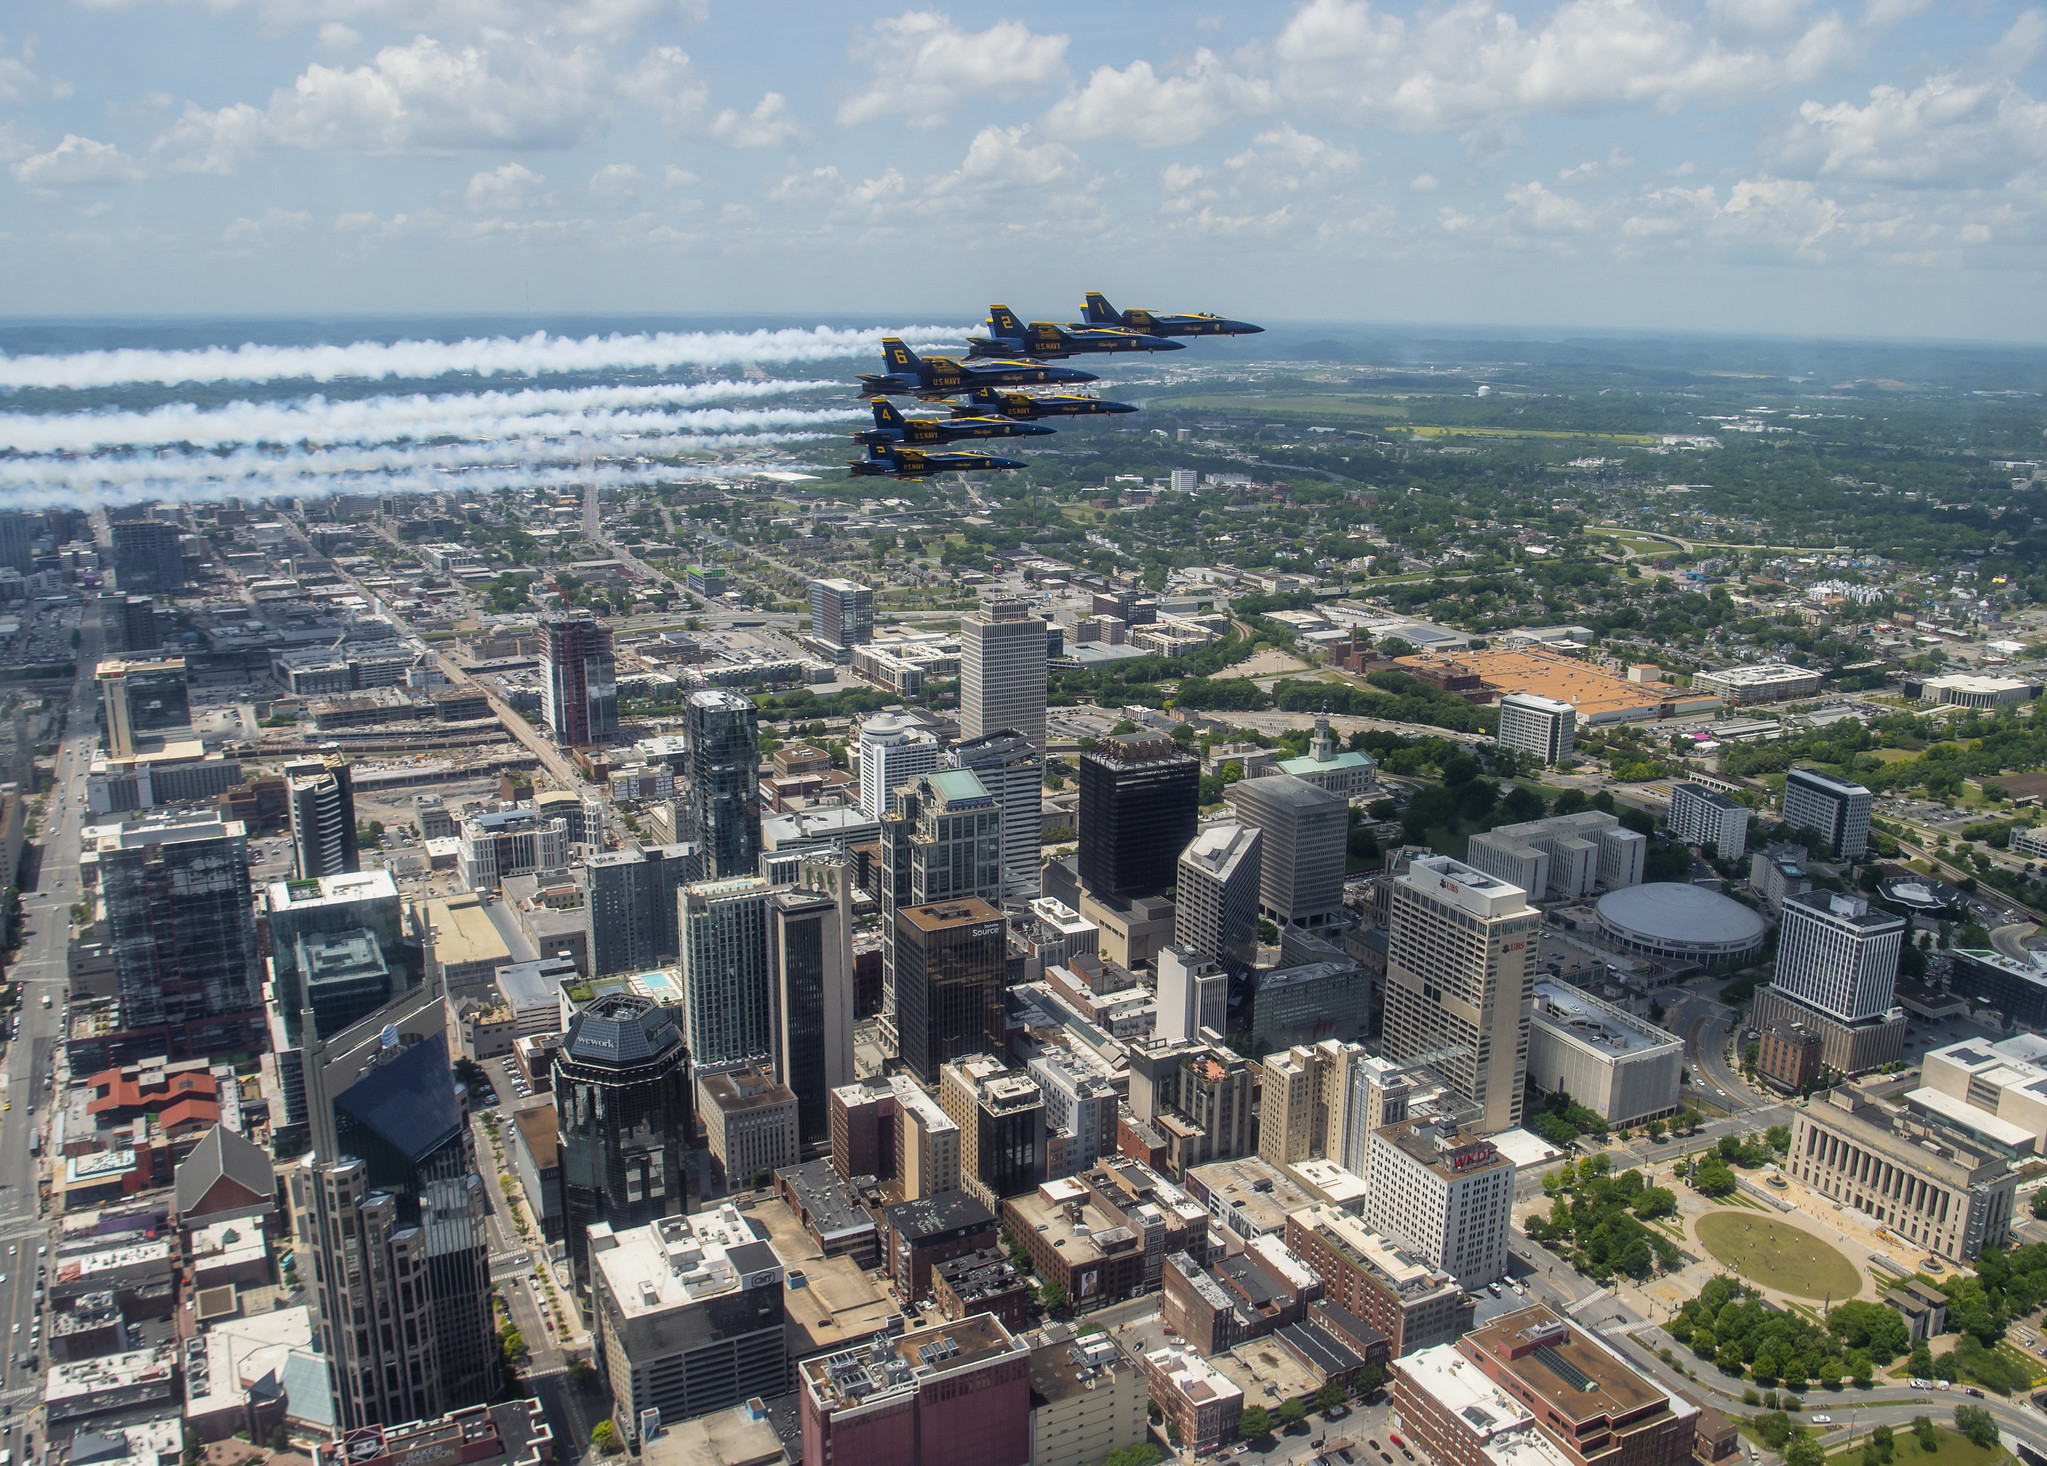 The U.S. Navy Flight Demonstration Squadron, the Blue Angels, honored frontline COVID-19 first responders and essential workers with formation flights over Nashville and Little Rock on May 14, 2020. (MC2 Cody Hendrix/Navy)